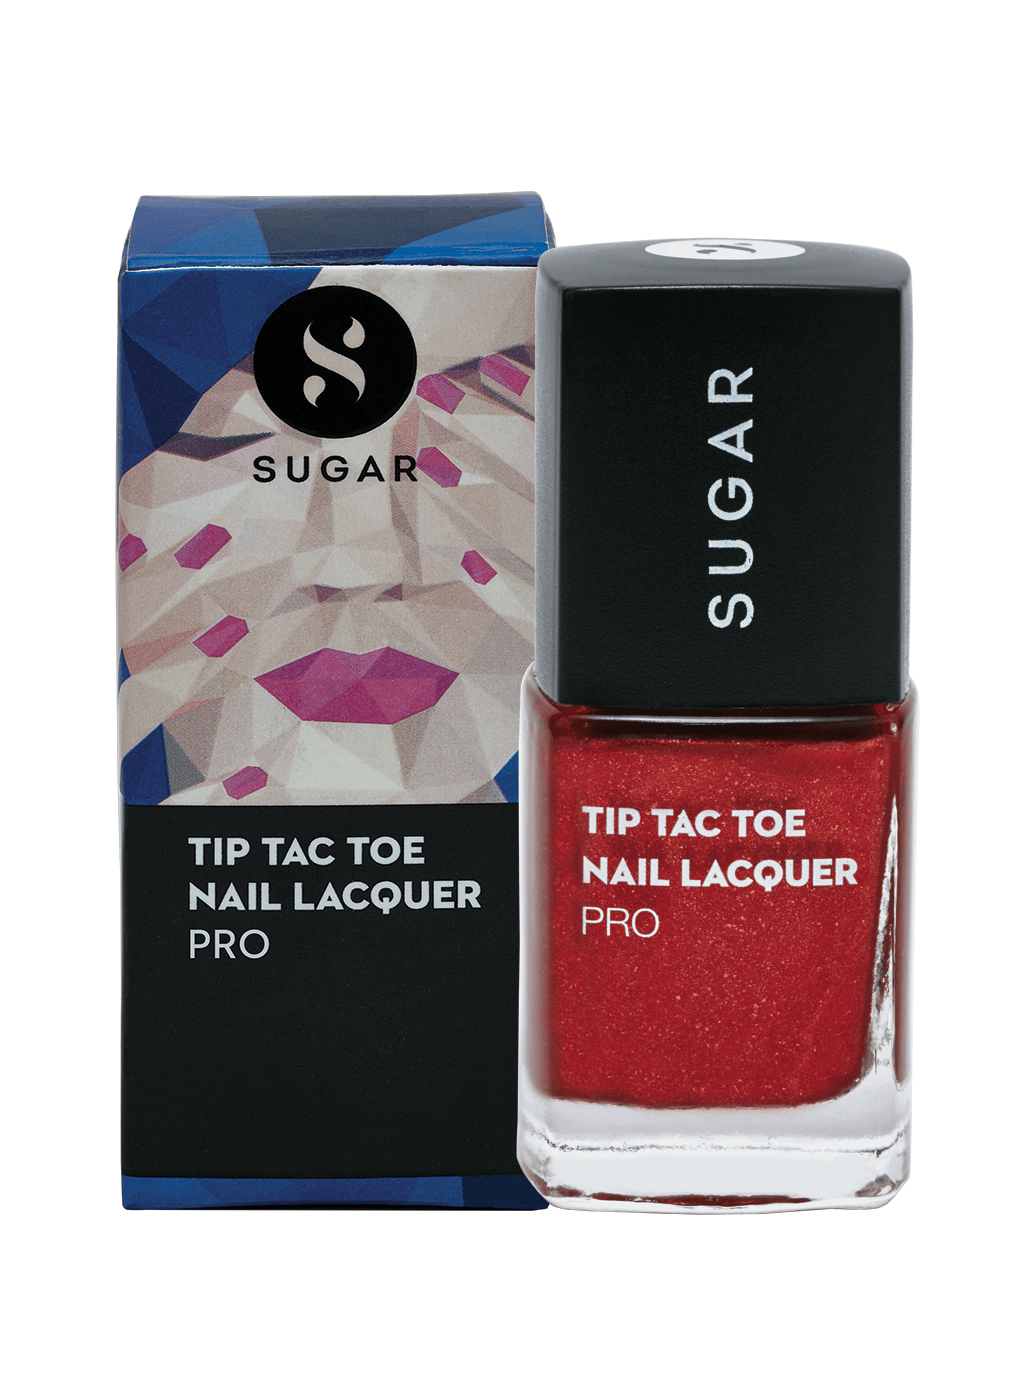 Tip Tac Toe Nail Lacquer - 061 Rise From The Red (Red Foil)